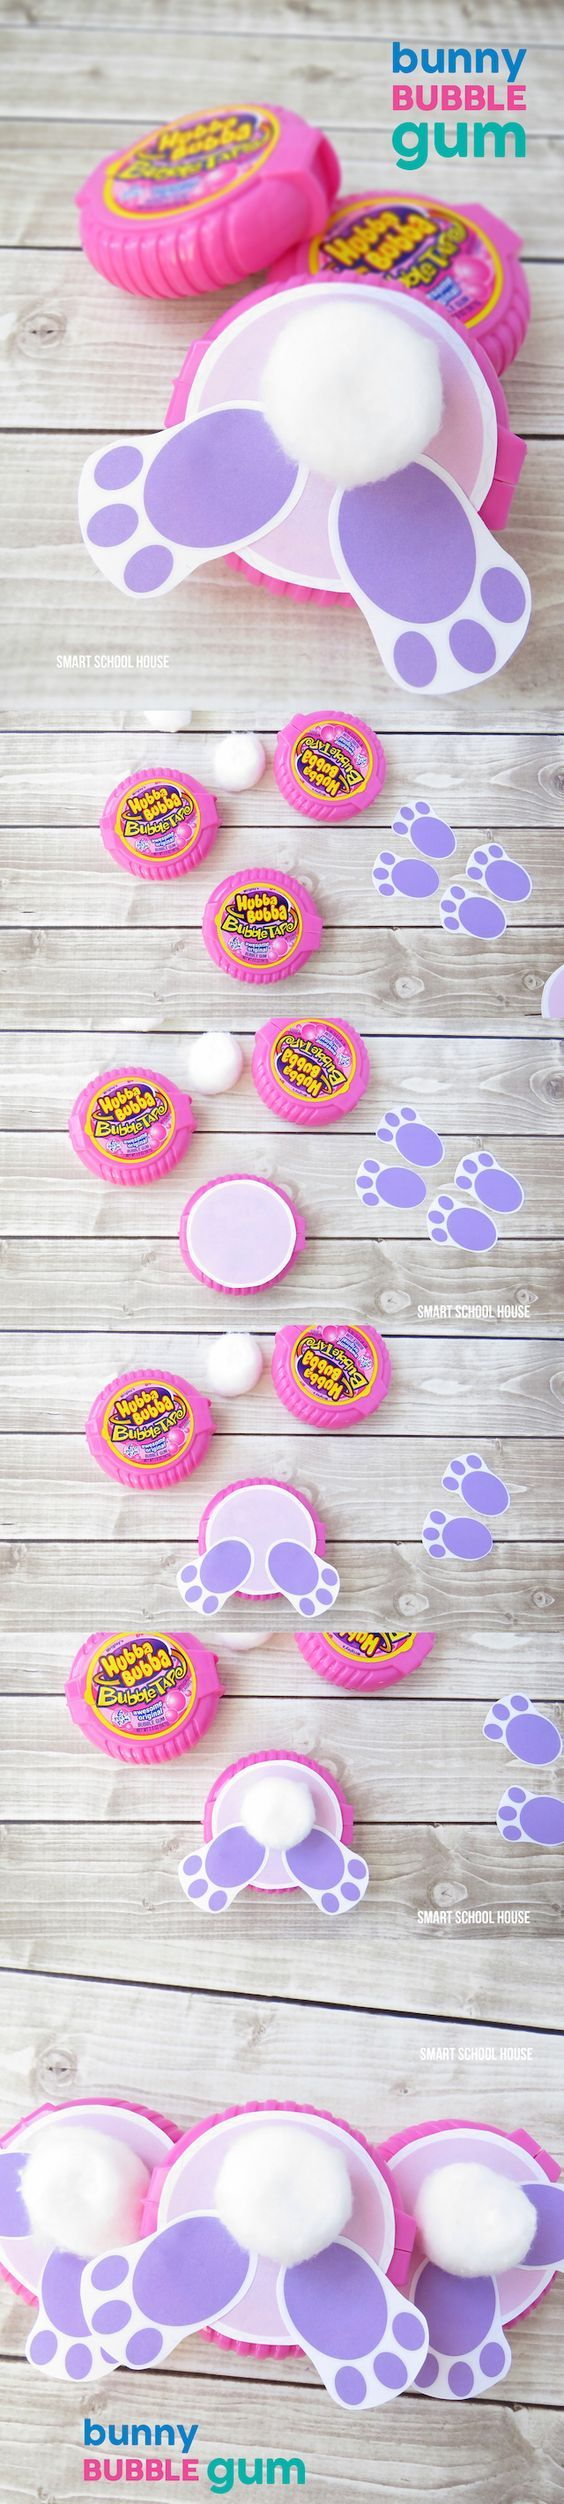 How to make bunny bubble gum using bubble tape gum a cute diy how to make bunny bubble gum using bubble tape gum a cute diy easter gift negle Image collections